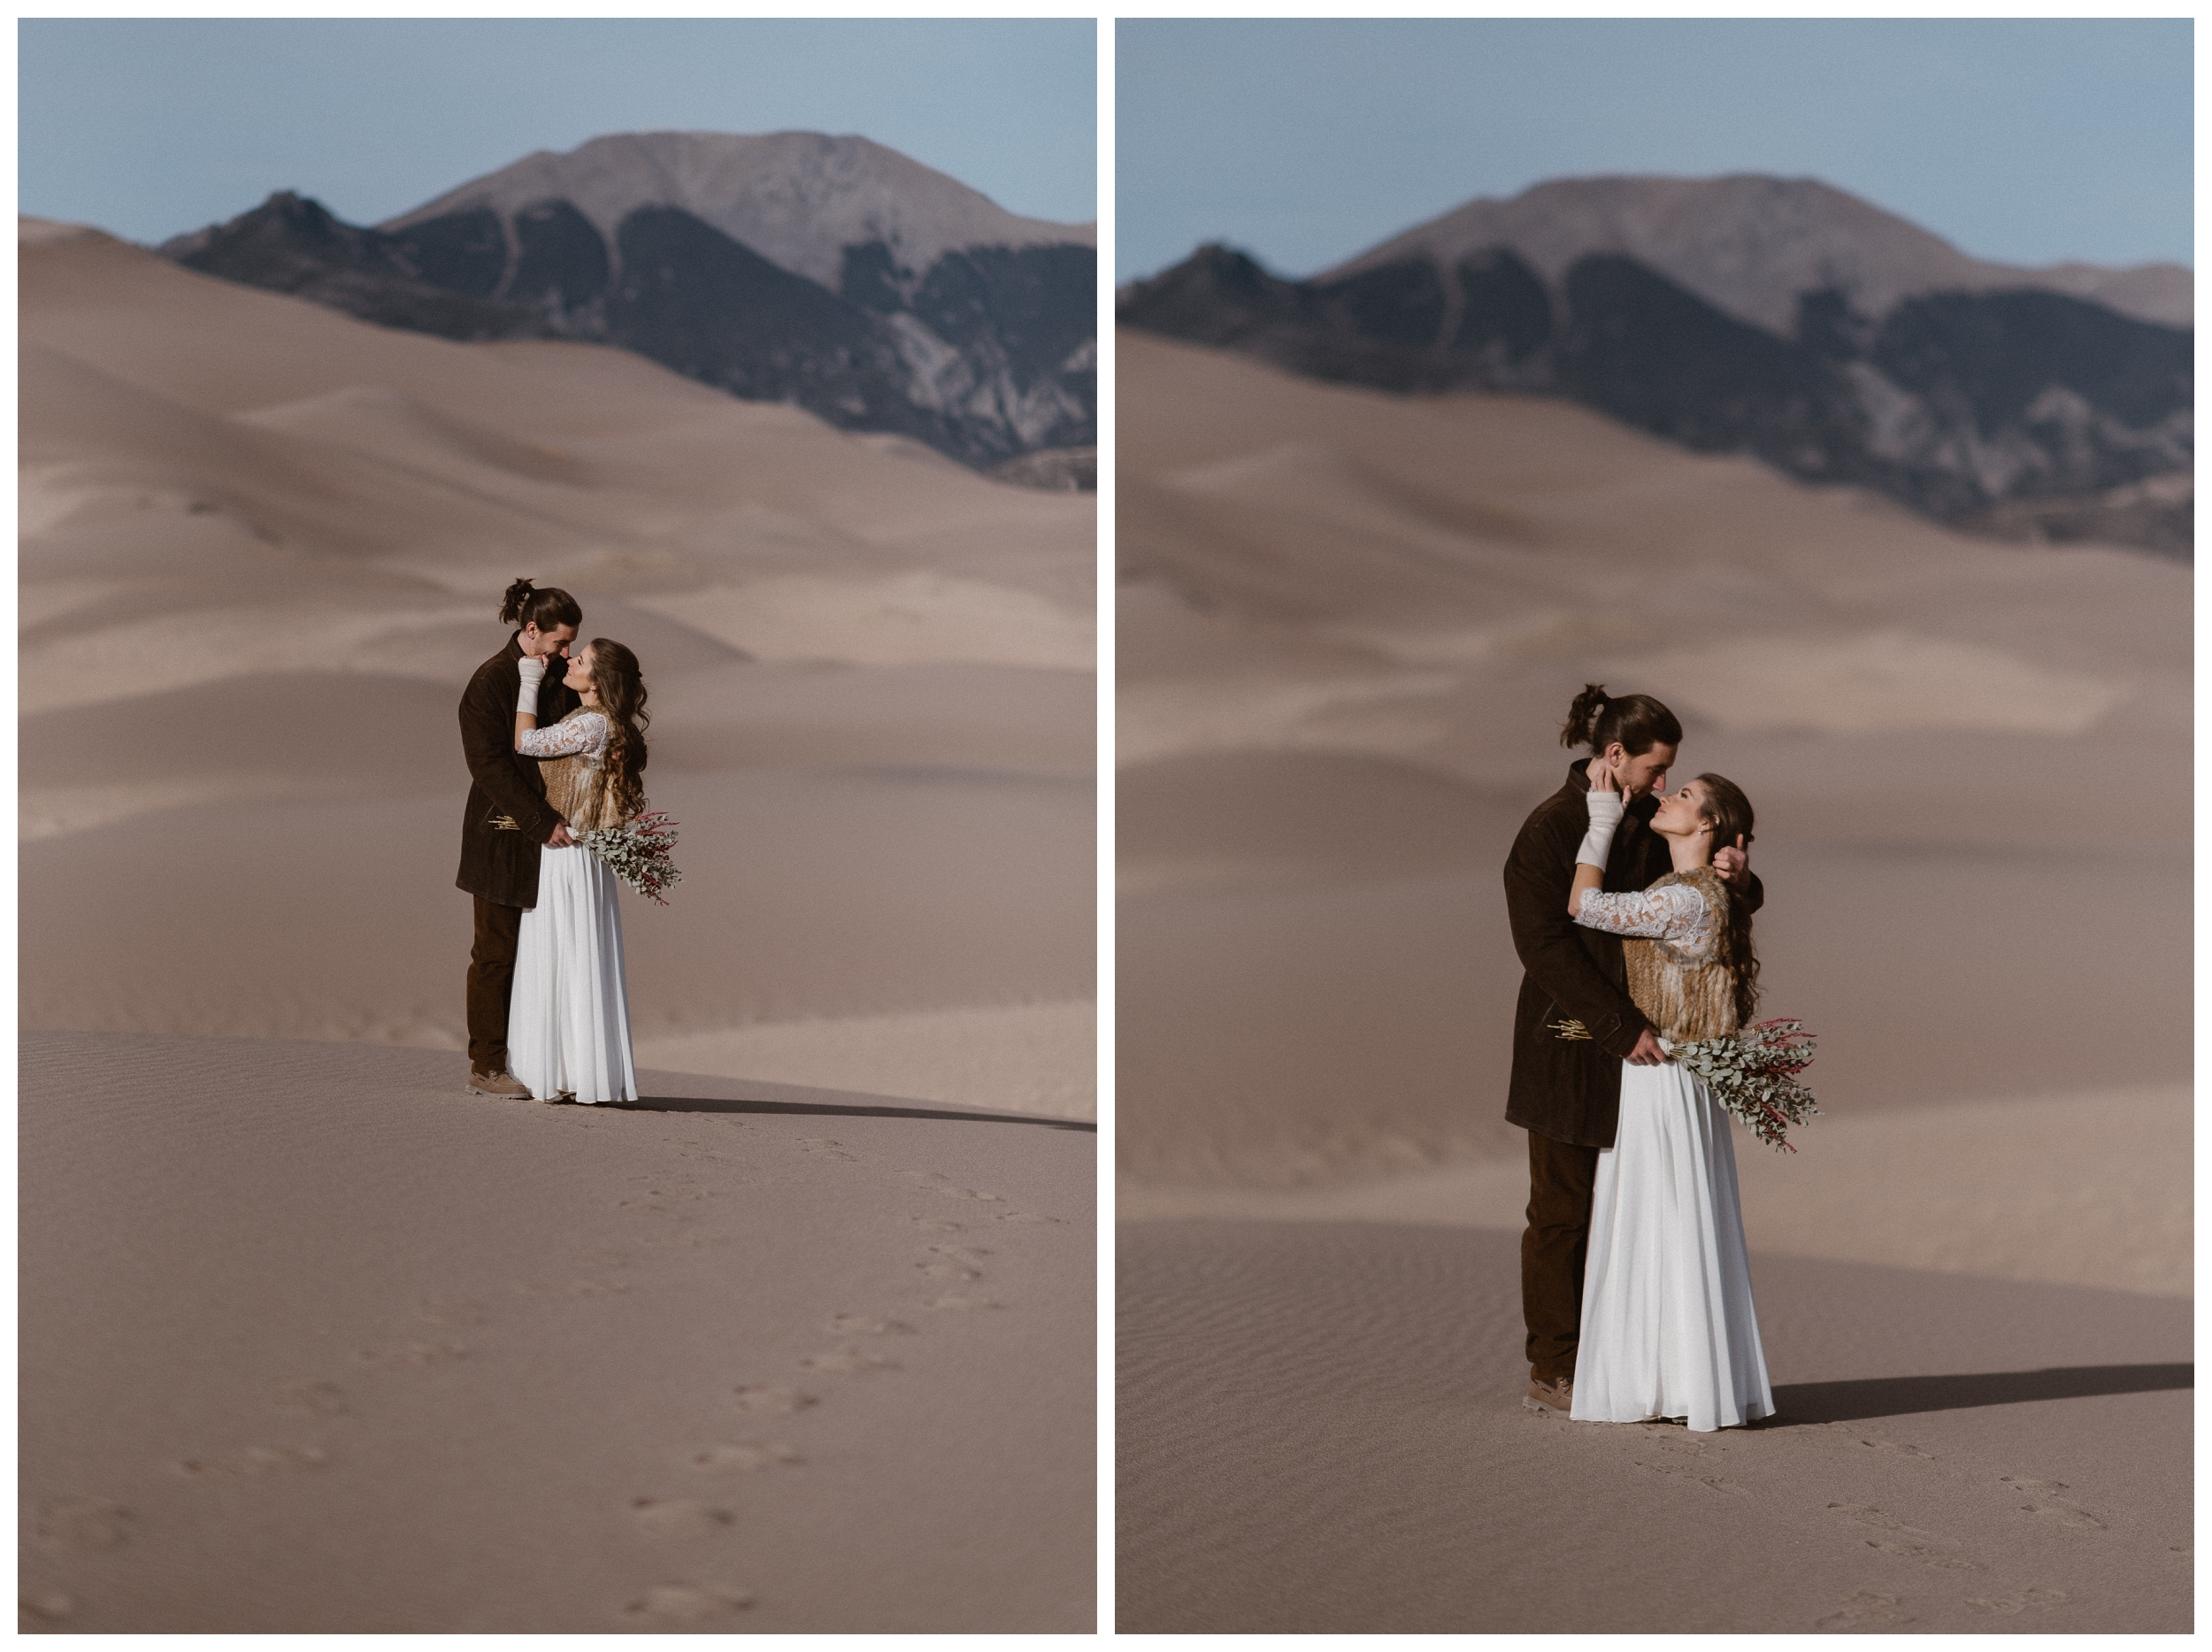 The only two people on the dunes, Olivia and Justin hold each other close during their winter adventure elopement at the Great Sand Dunes National Park. Photo by Maddie Mae Photo, Adventures Instead.